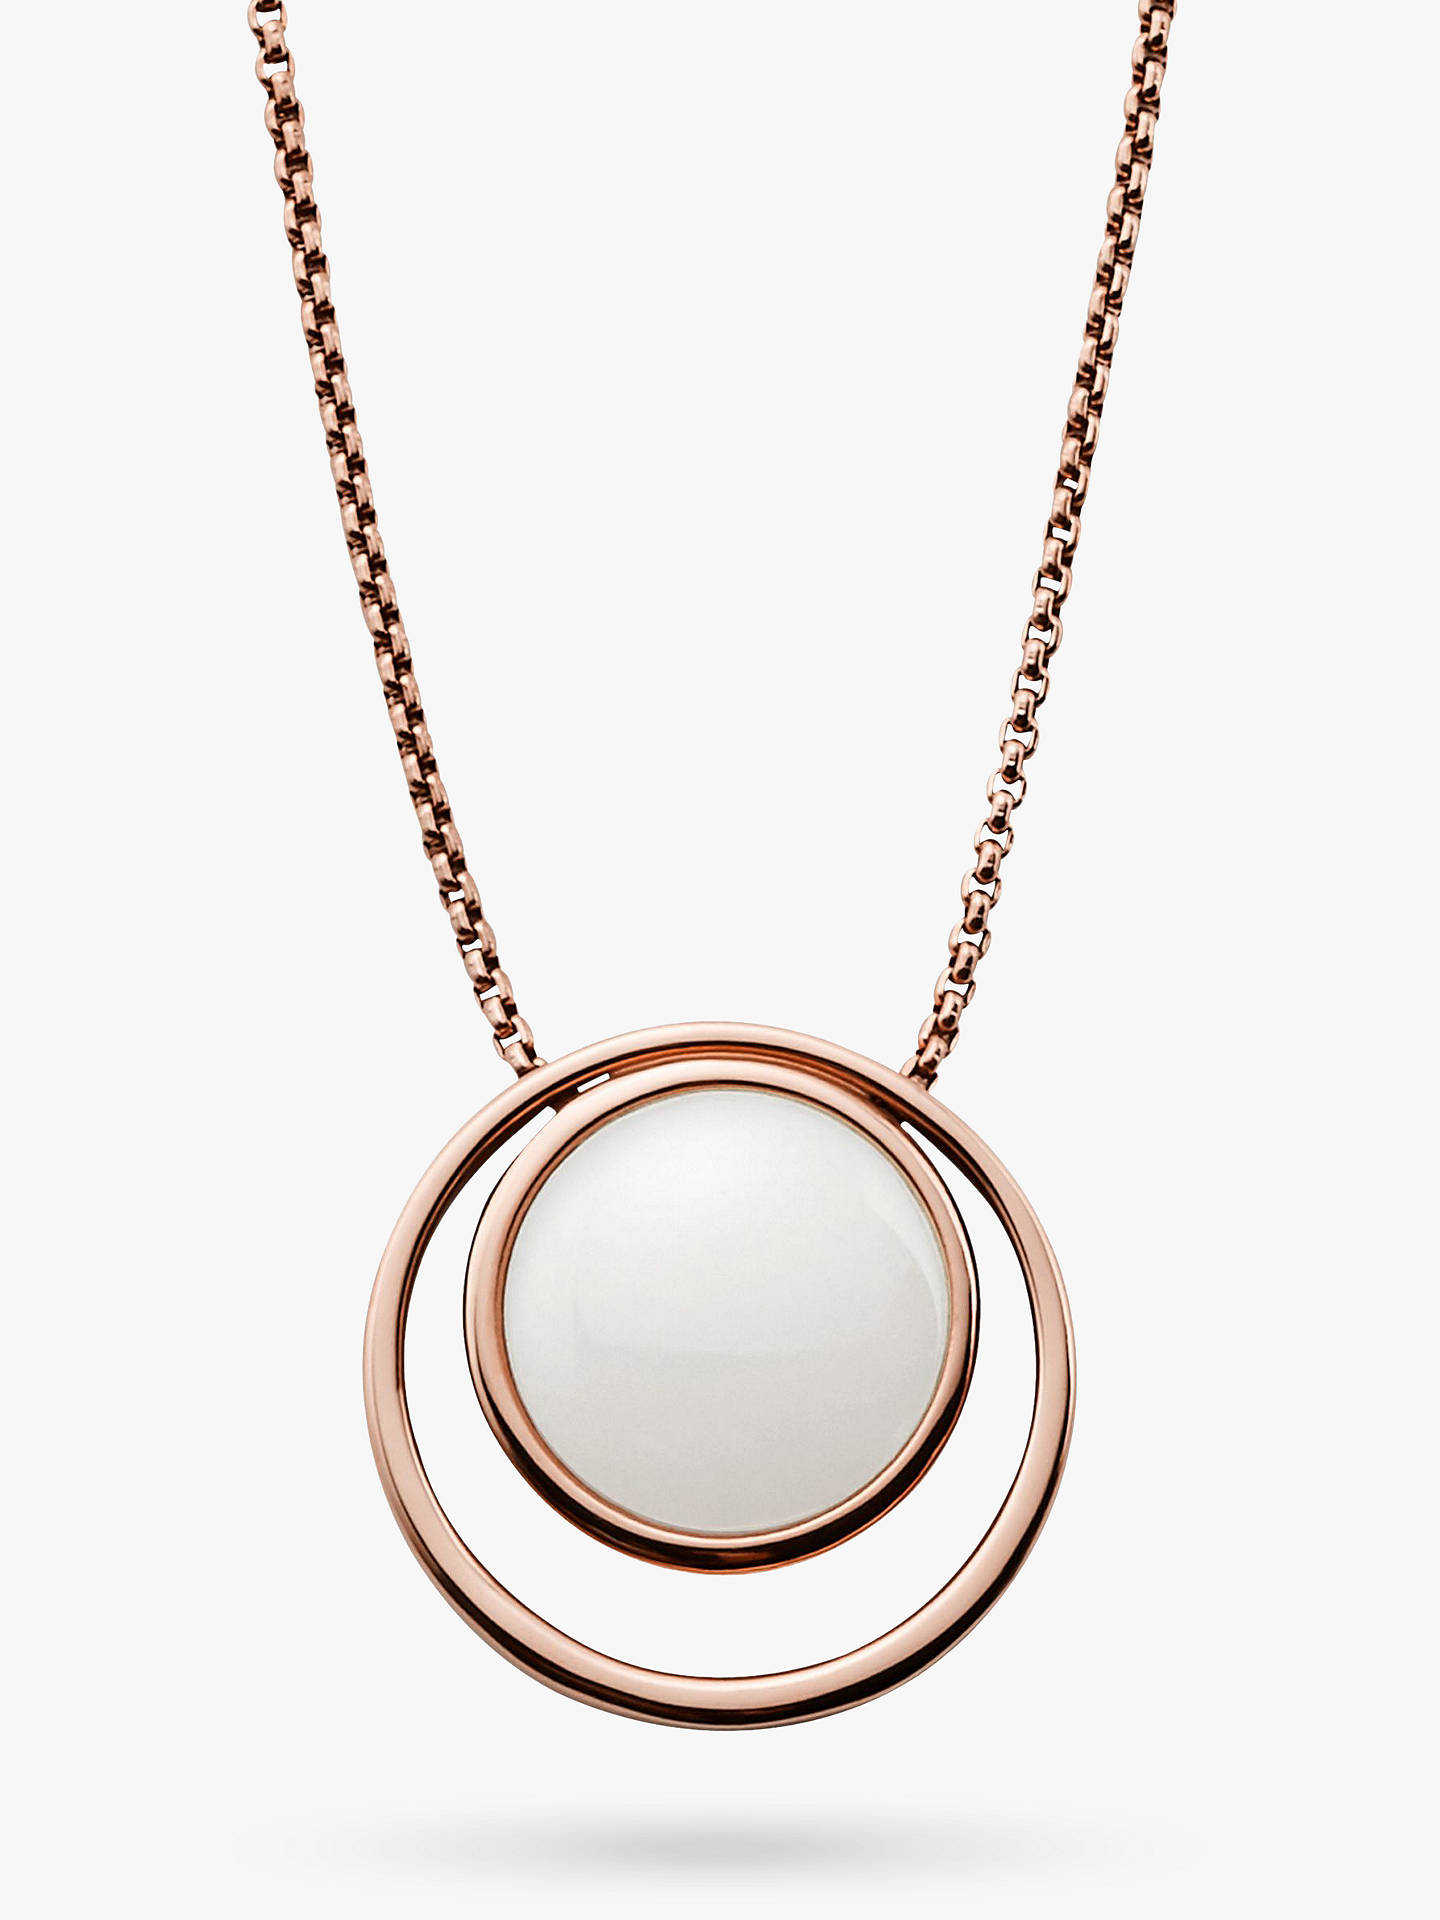 BuySkagen Sea Glass Double Round Pendant Necklace, Rose Gold/White SKJ0821791 Online at johnlewis.com